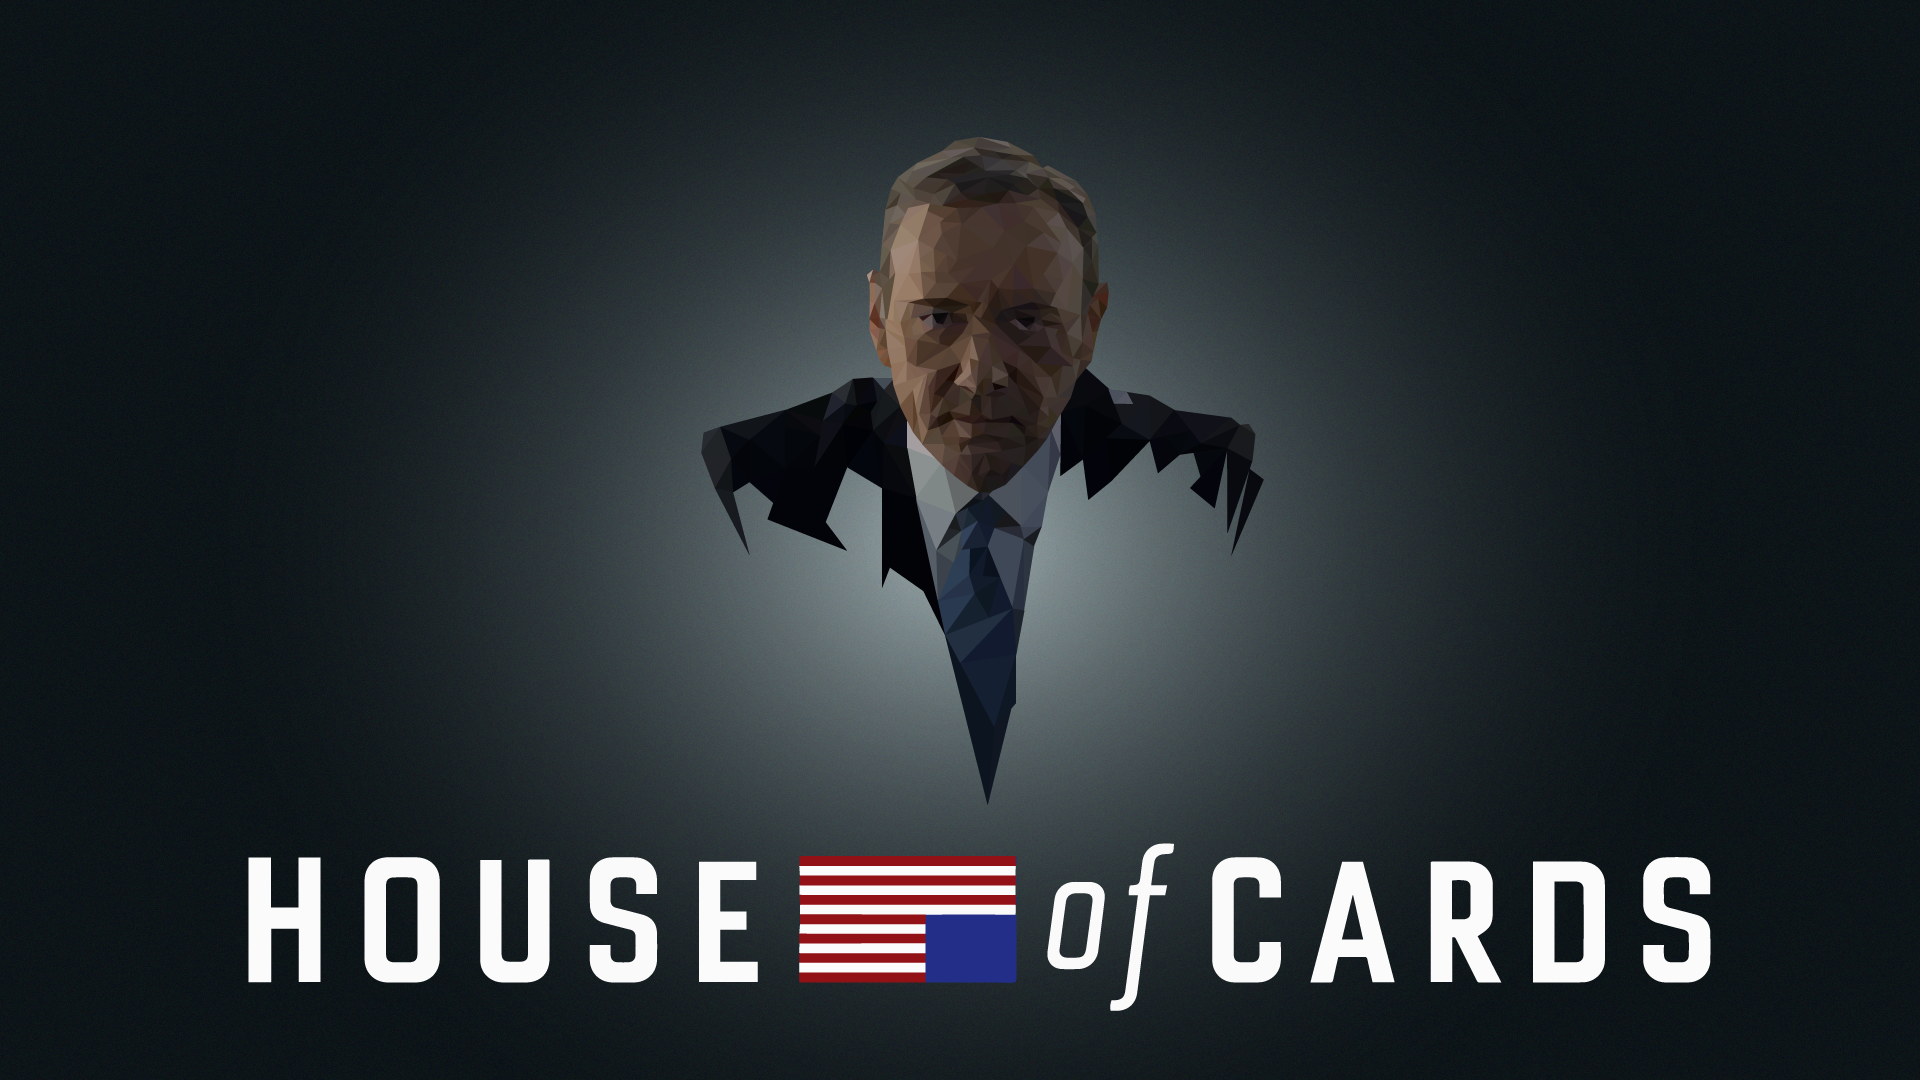 House Of Cards Logo Google Search House Of Cards Seasons House Of Cards Beach Kids